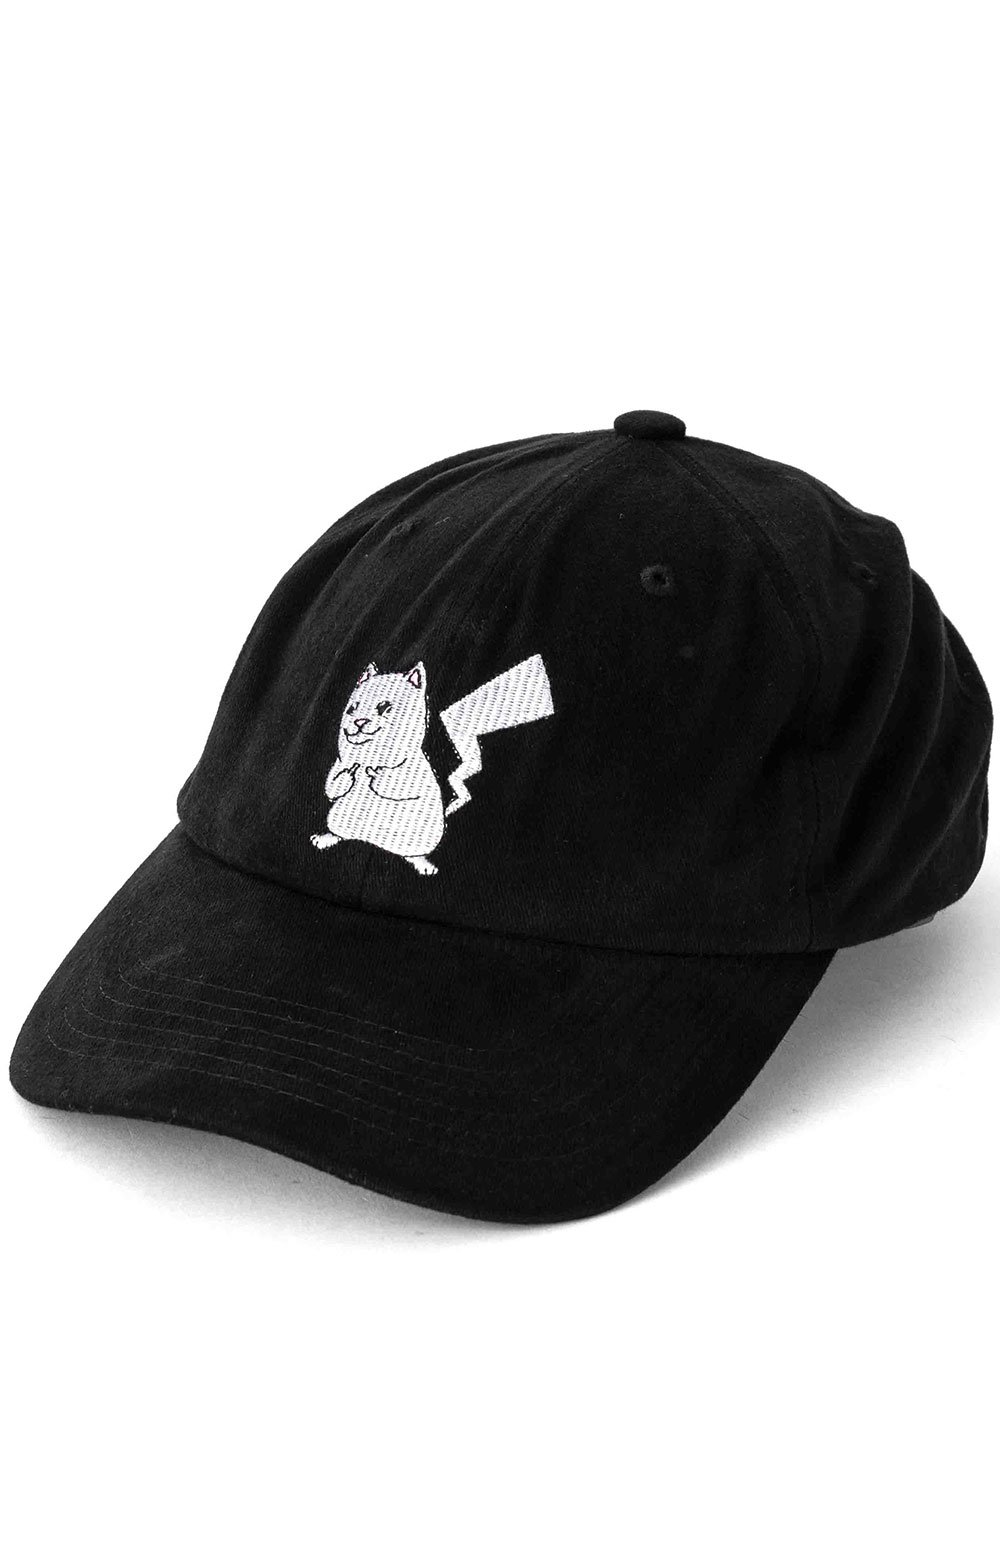 Catch Em All Strap-Back Hat - Black